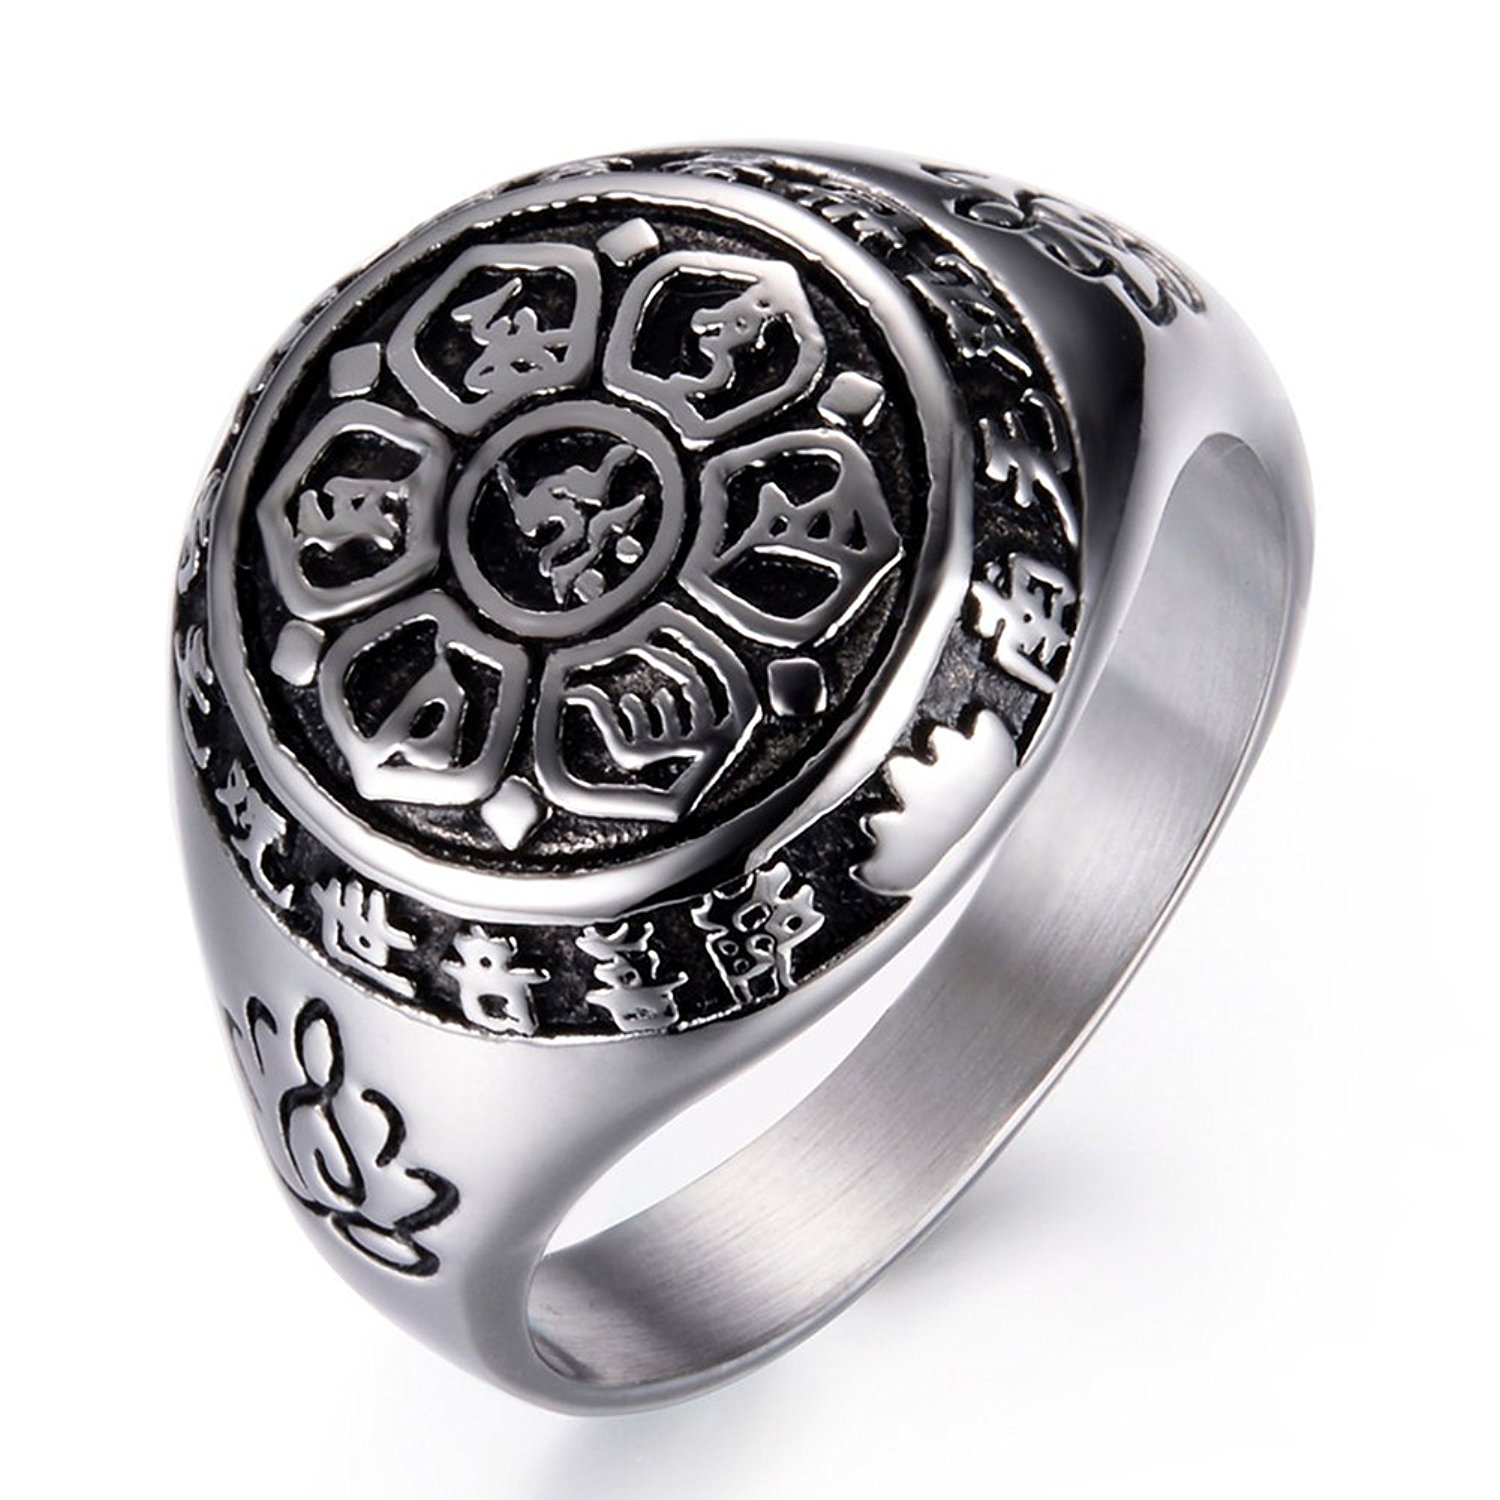 b5fe4f06f8790 Cheap Mens Rings Engraved, find Mens Rings Engraved deals on line at ...